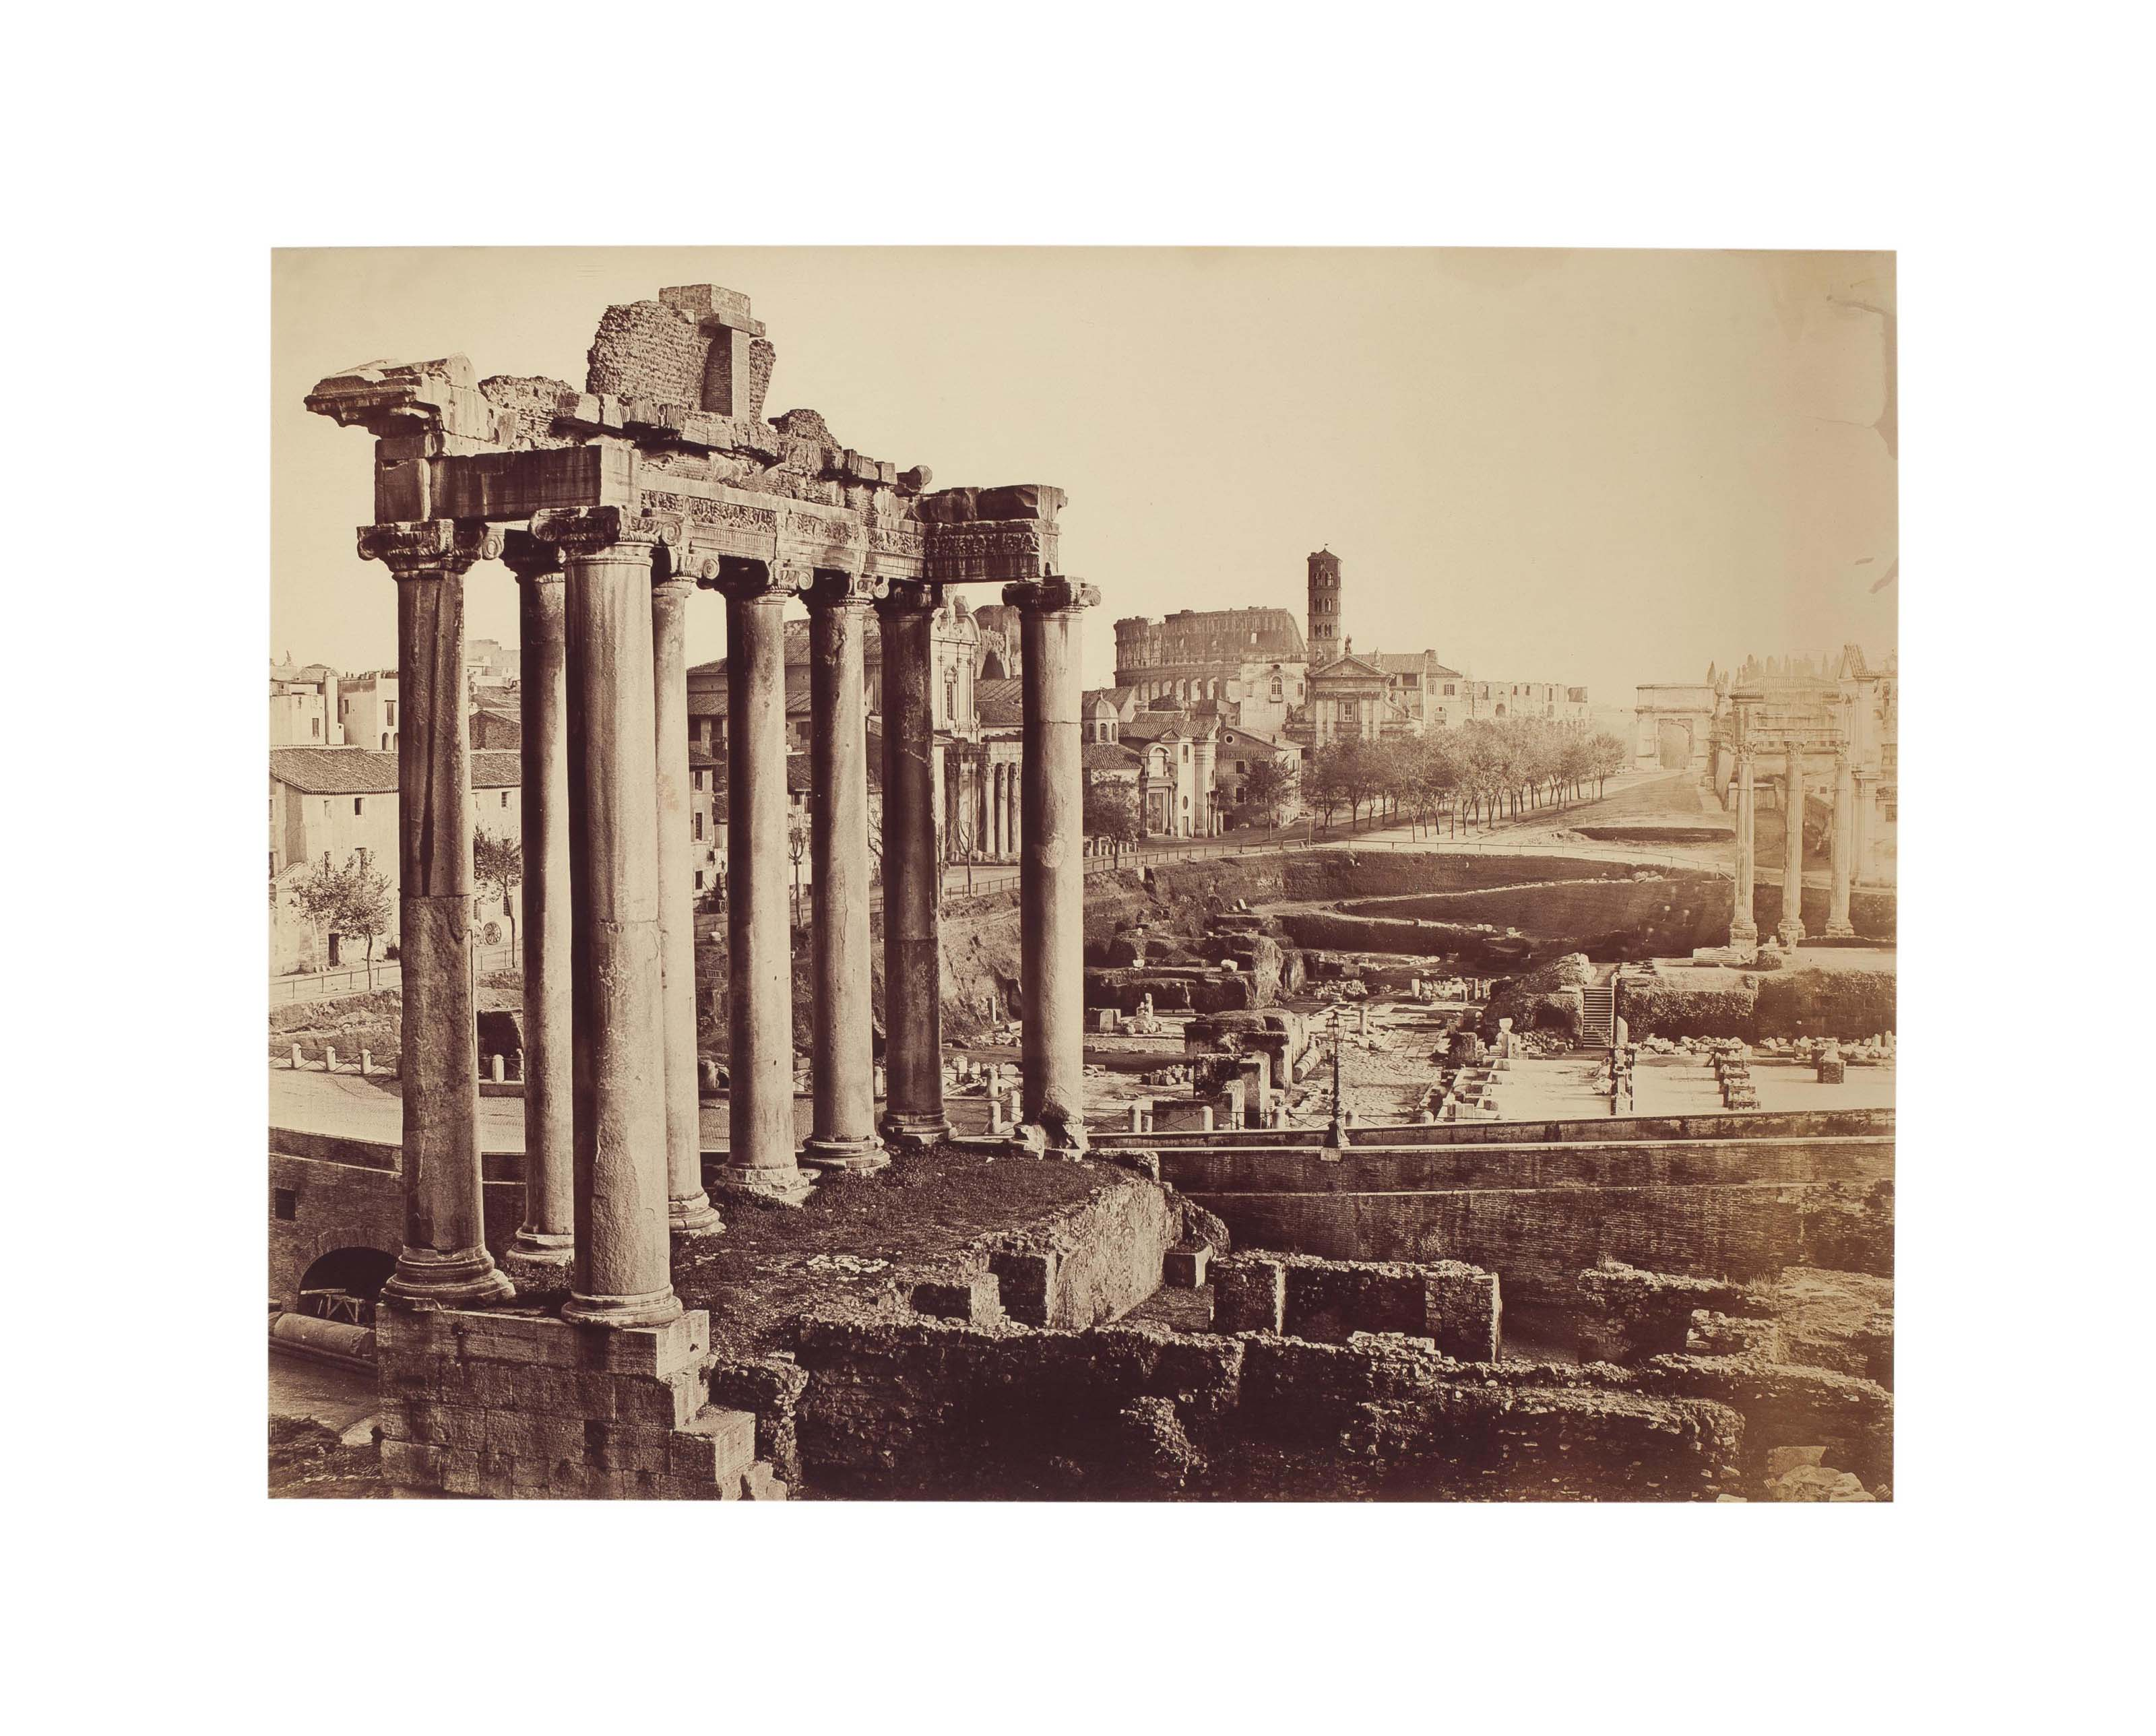 View of the Forum, Rome, c. 1860